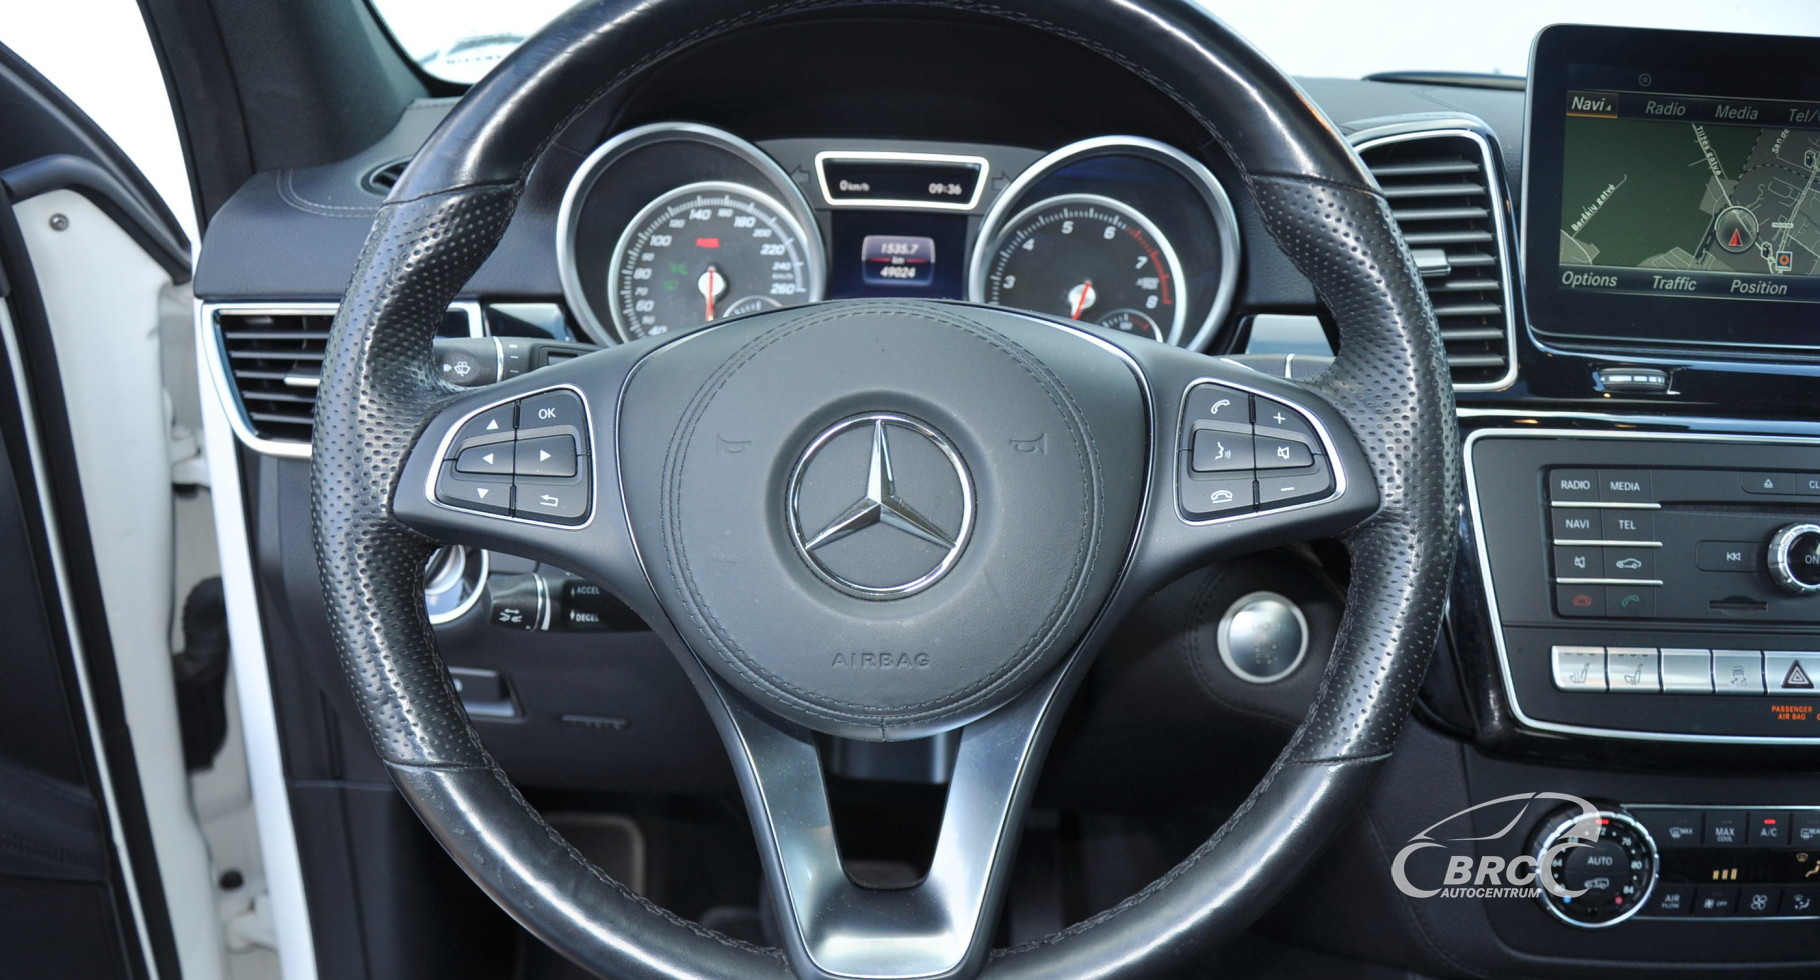 Mercedes-Benz GLS 550 4Matic Automatas